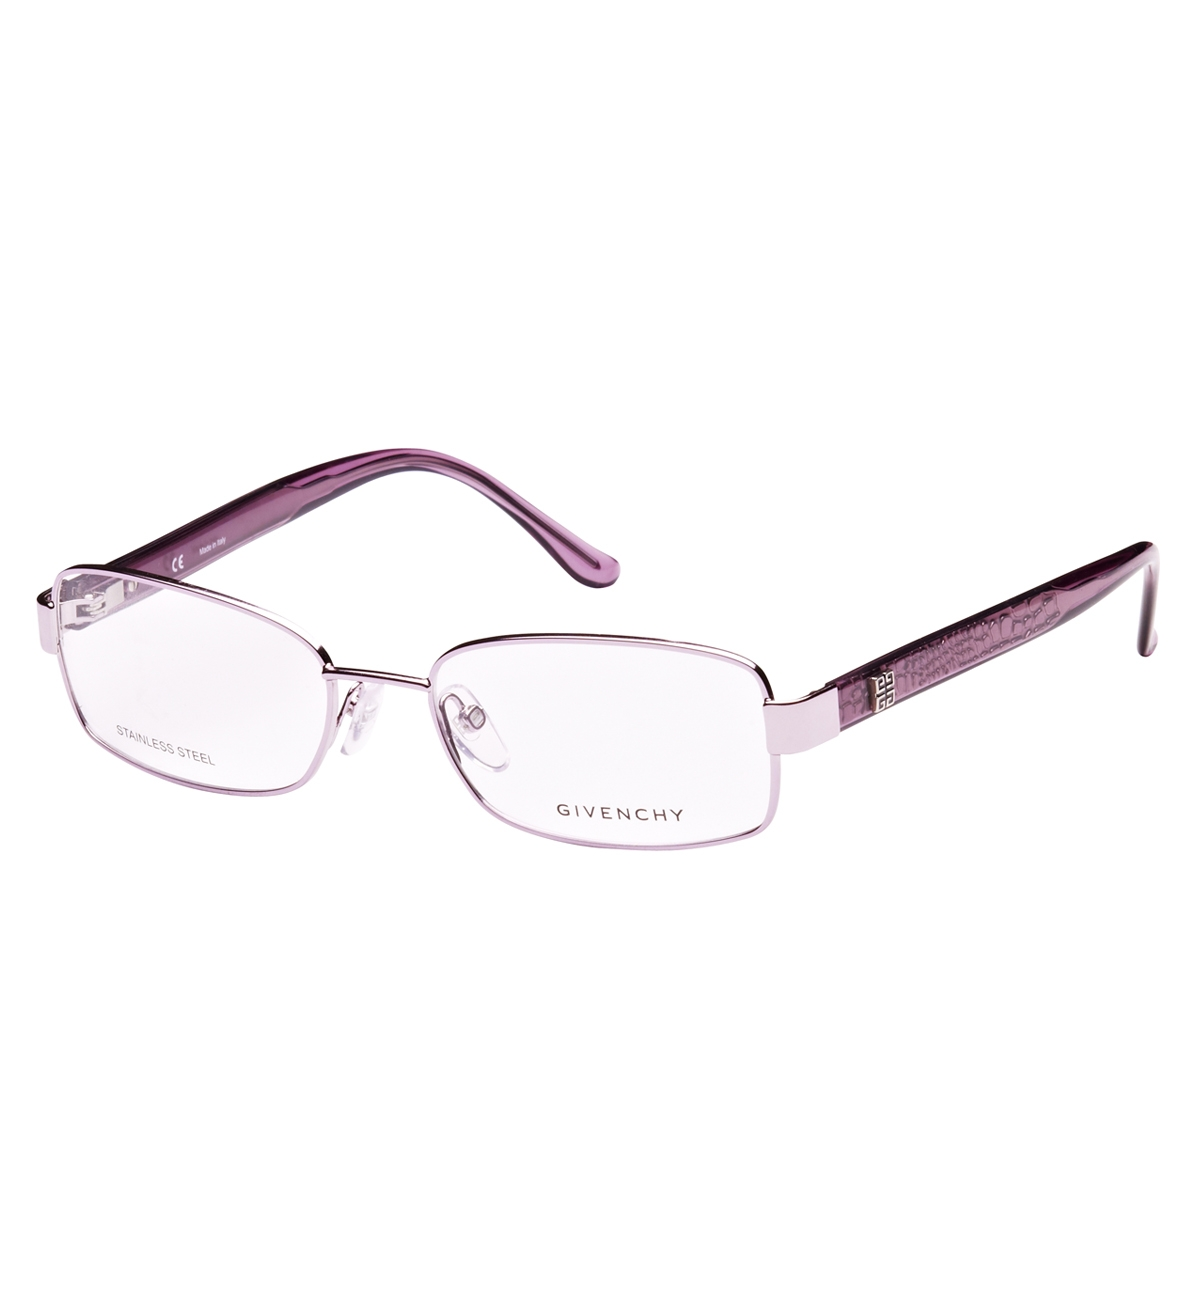 Givenchy VGV385 Lilac Women's Glasses